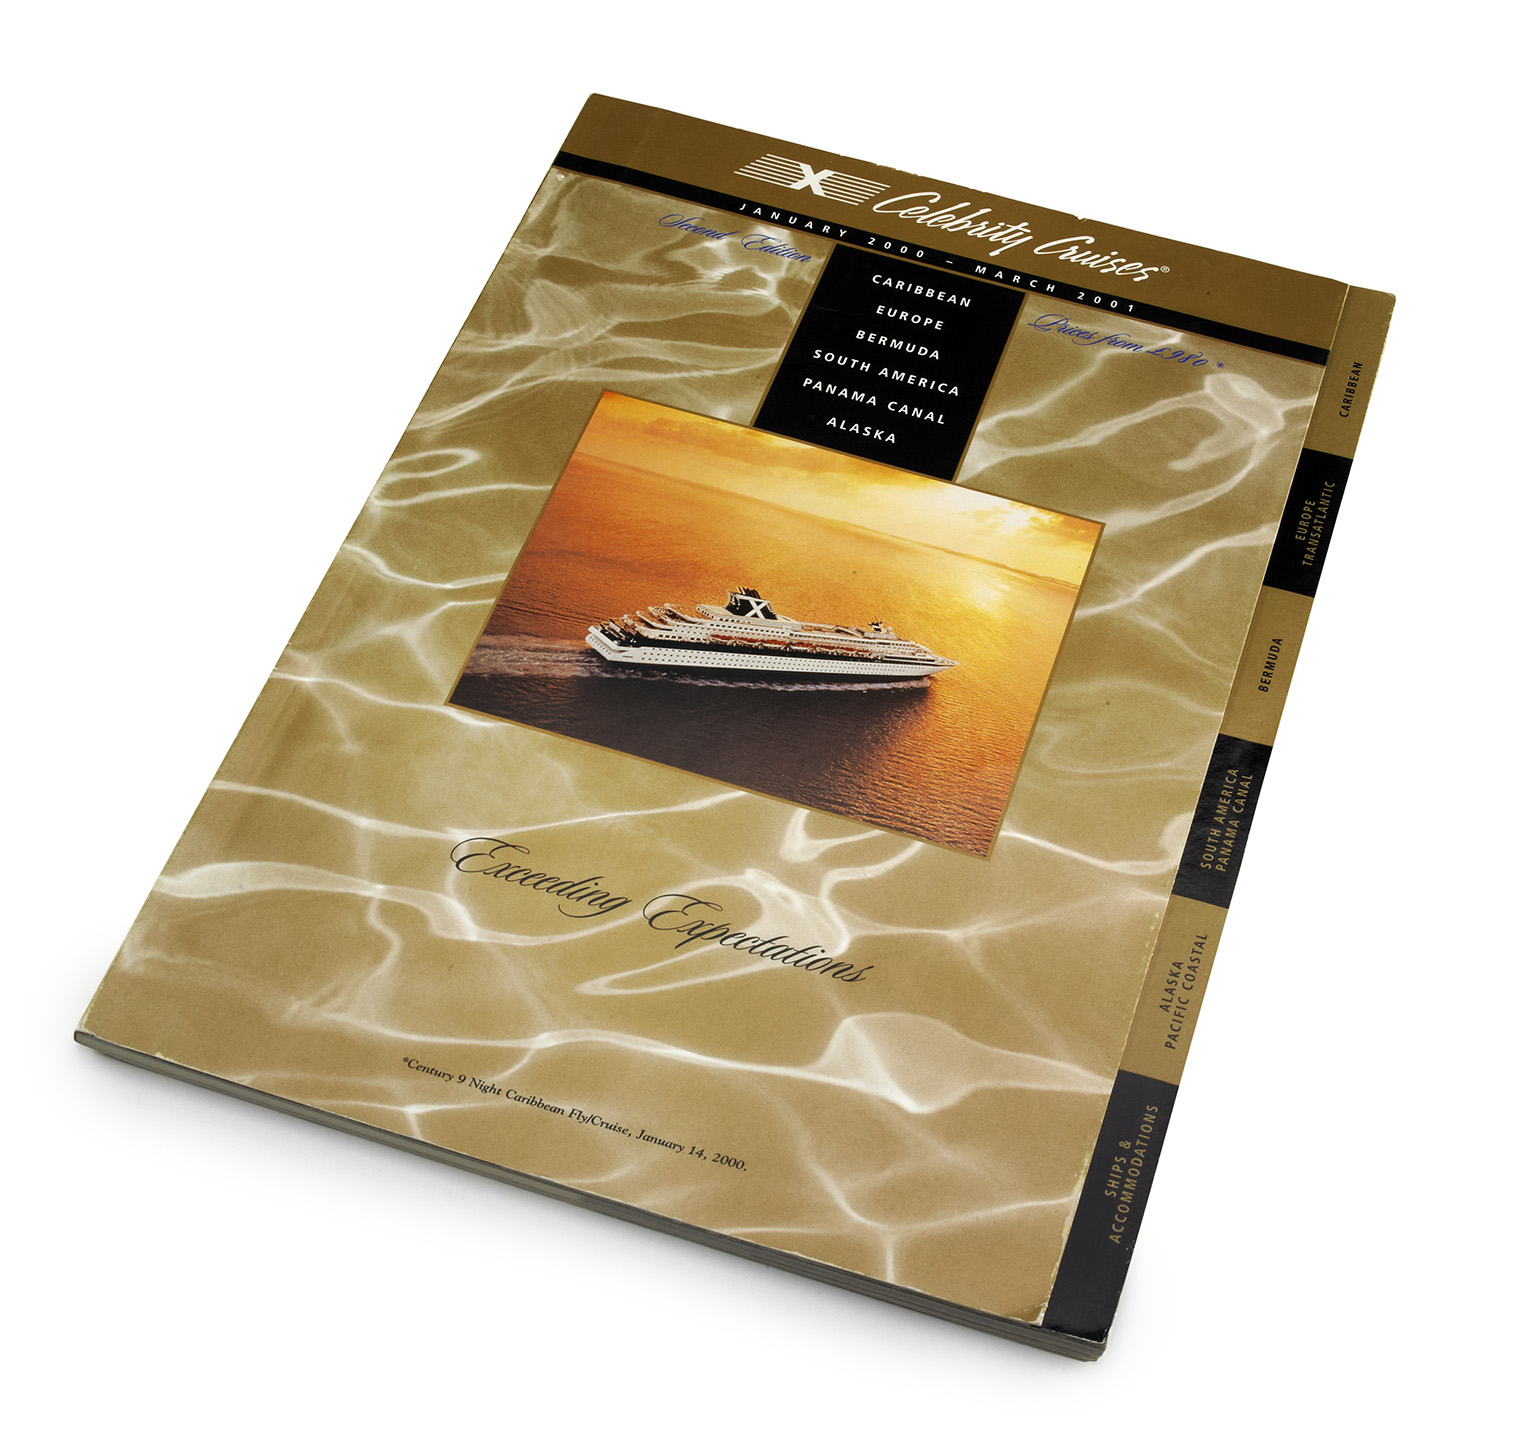 The cover of the International Fleet Catalog. Luxury just oozing out. Tabs on the side for quick access to sections of the catalog {a printer's nightmare}.